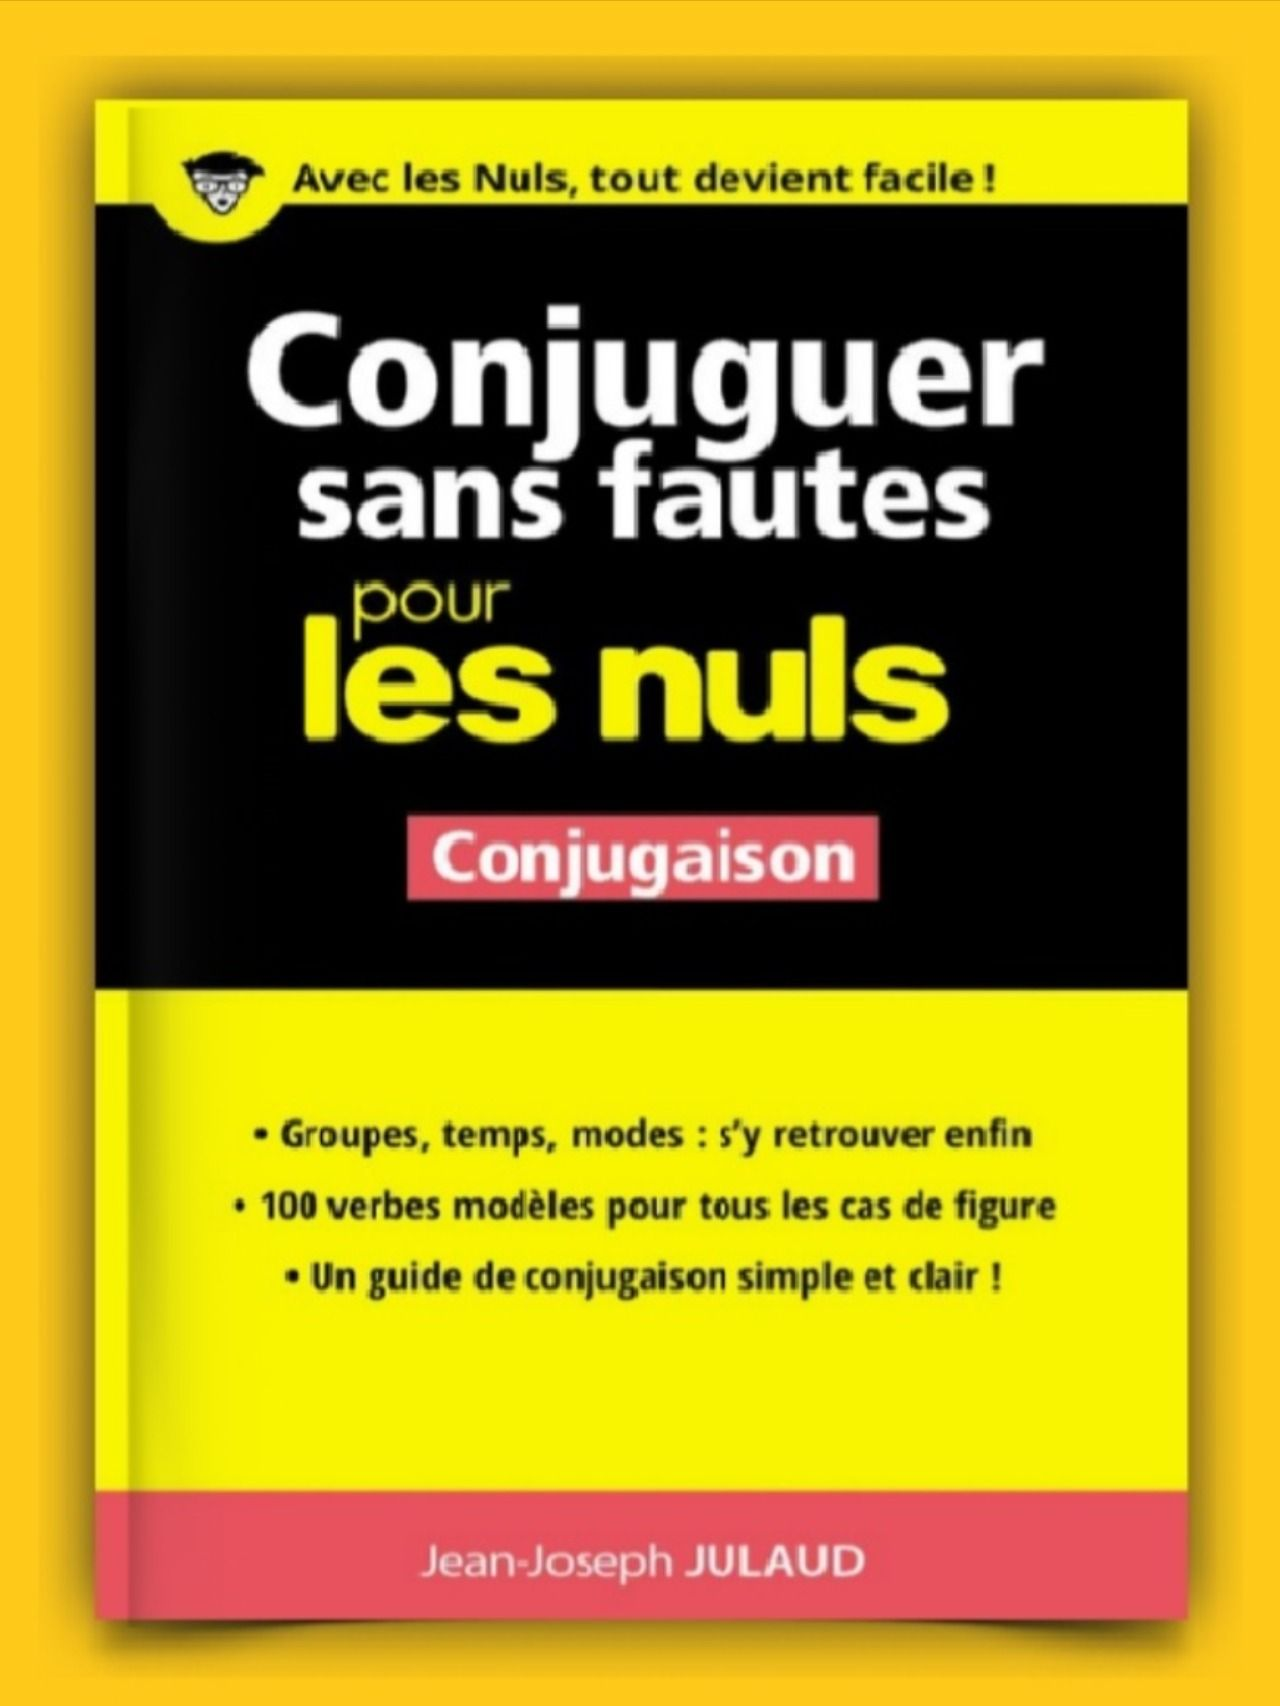 Conjuguer Sans Fautes Pour Les Nuls Pdf French Grammar French Vocabulary Vocabulary